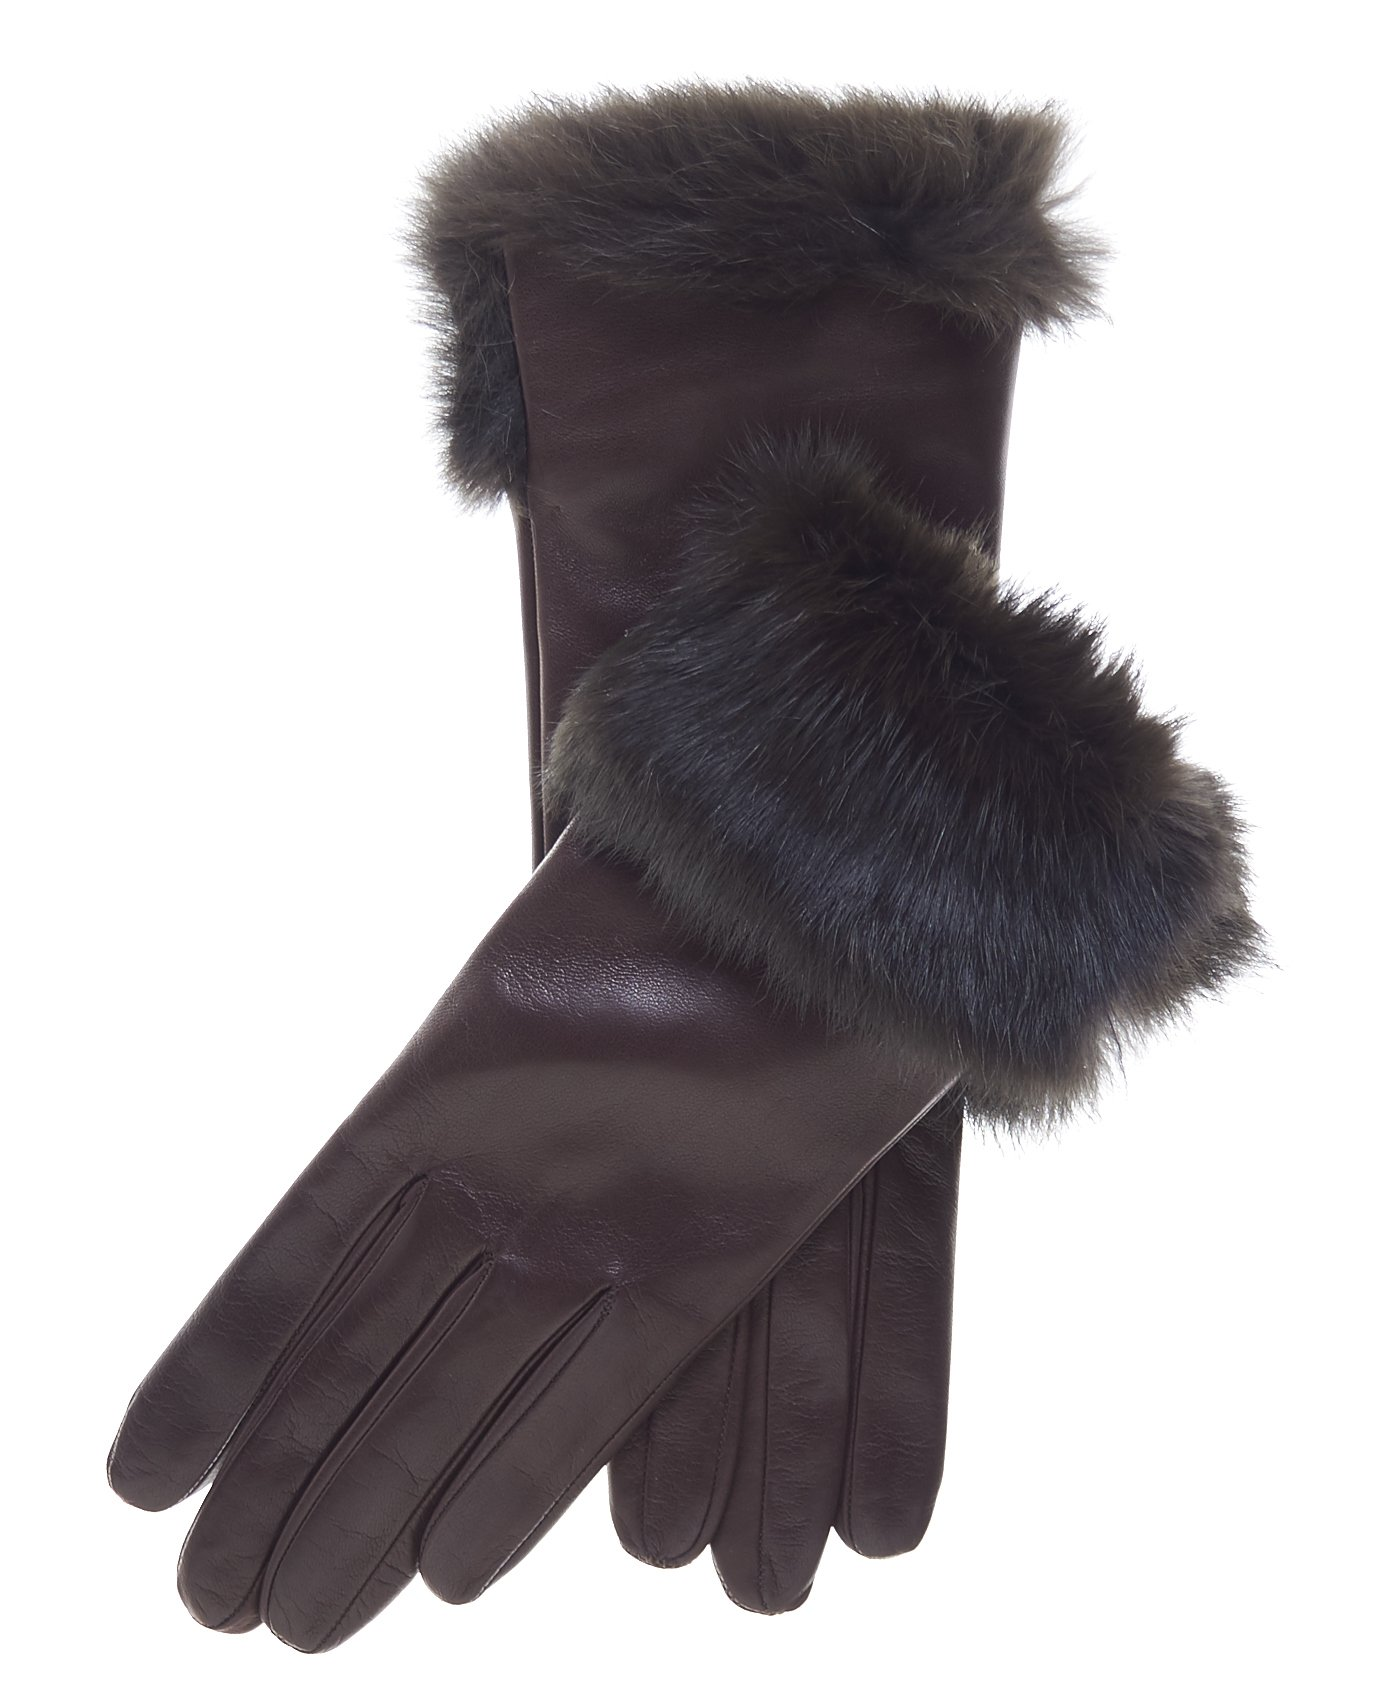 Fratelli Orsini Women's Italian Rabbit Fur Cuff Winter Leather Gloves Size 8 Color Brown